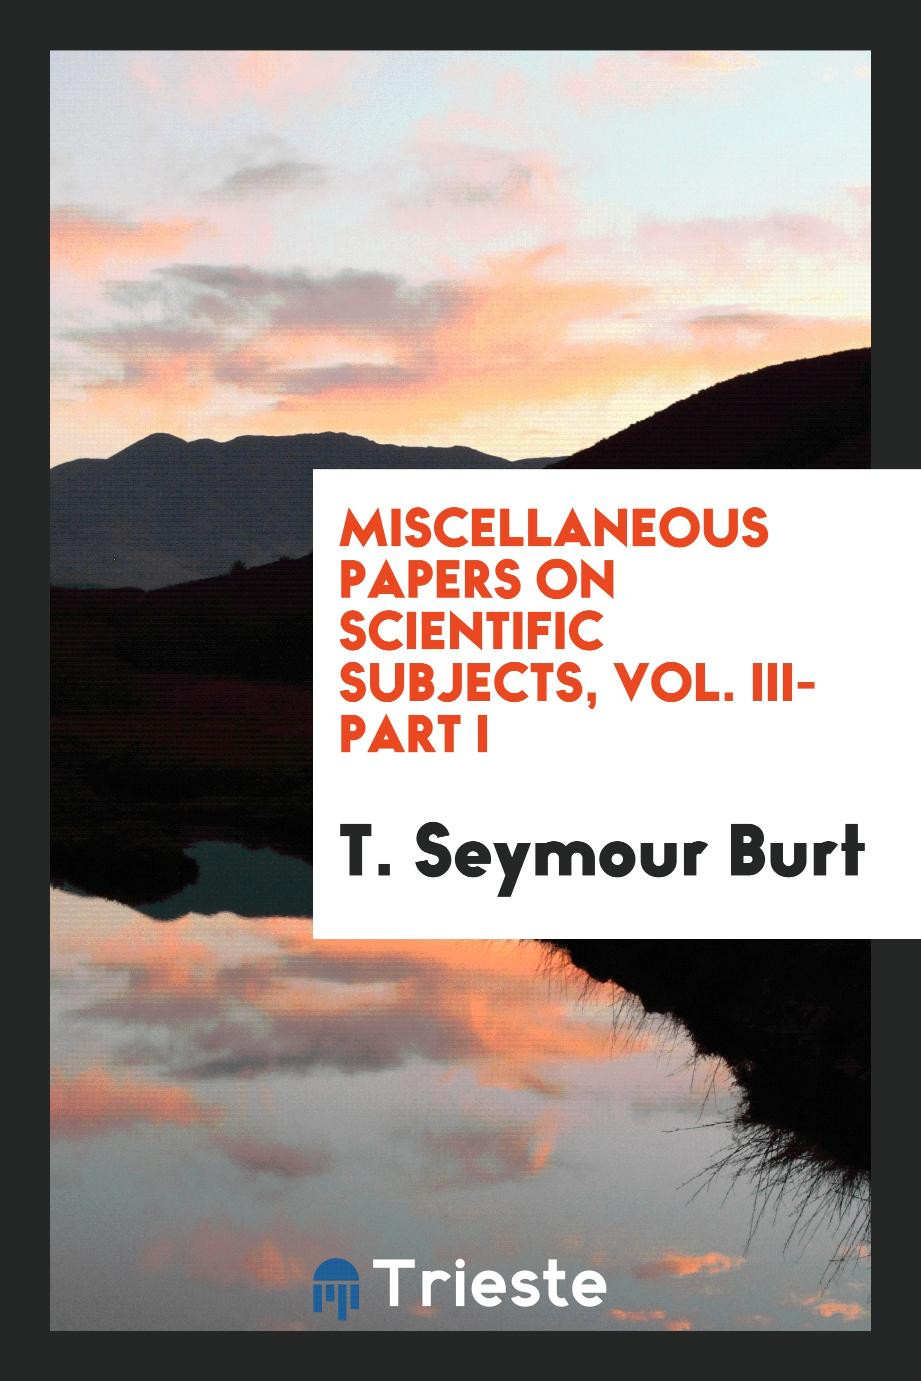 Miscellaneous papers on scientific subjects, Vol. III-Part I